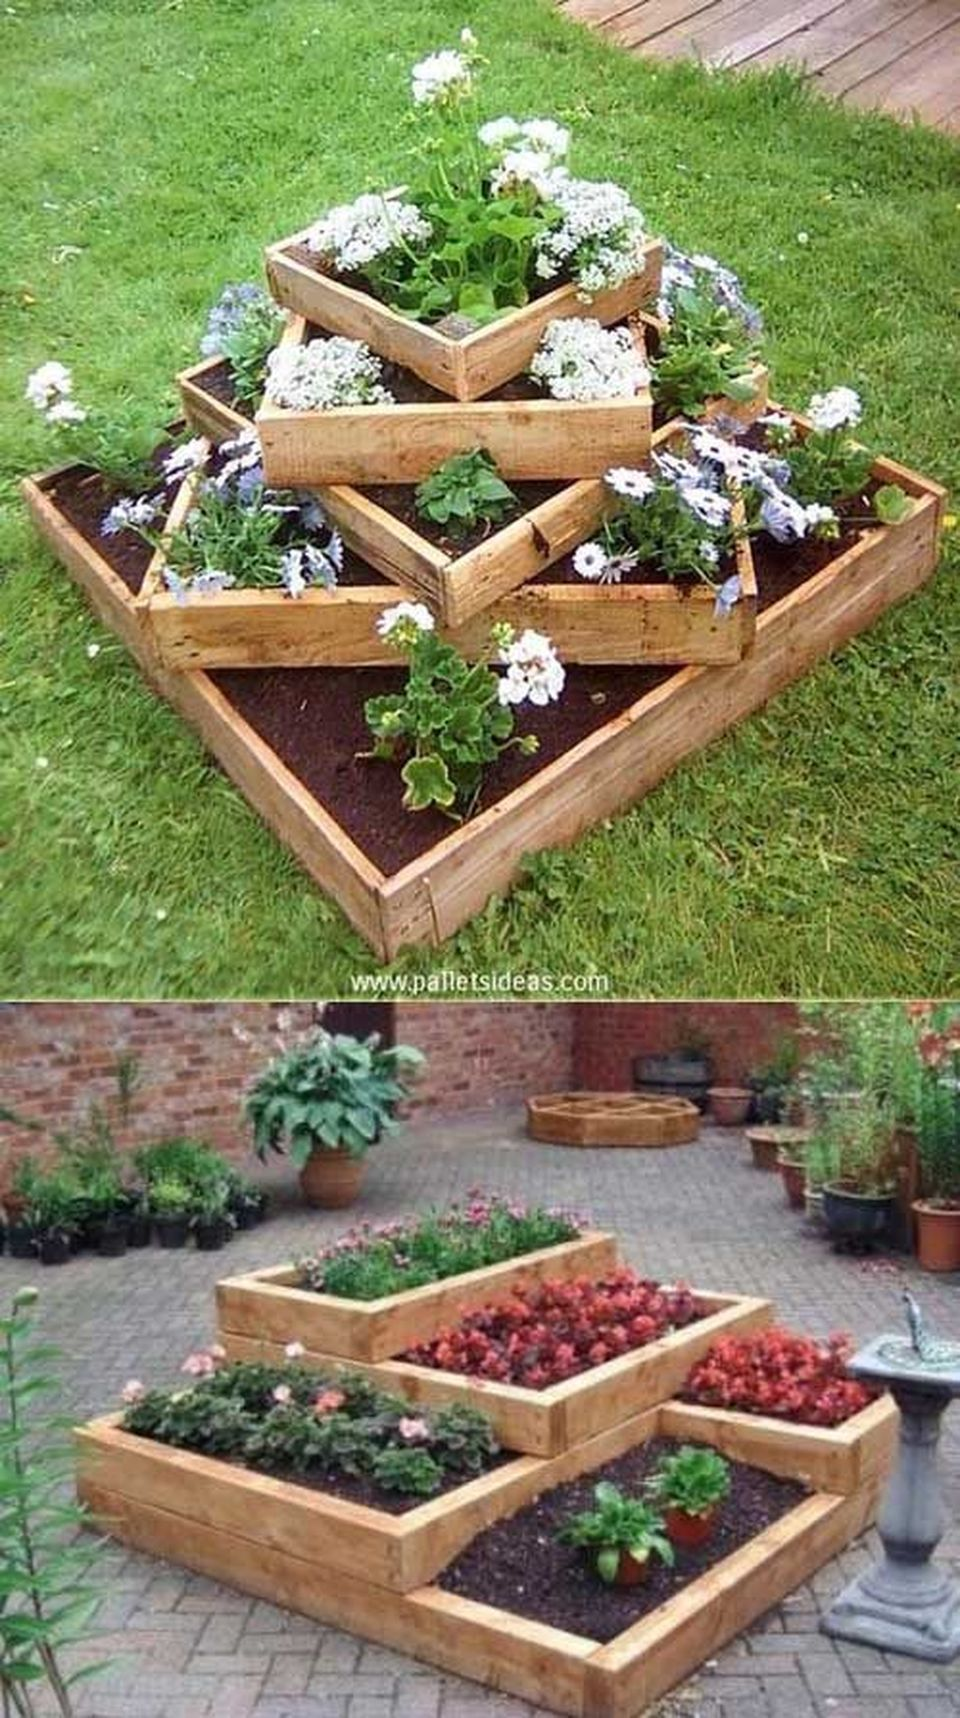 60 Amazing Creative Wood Pallet Garden Project Ideas | Pallets ...